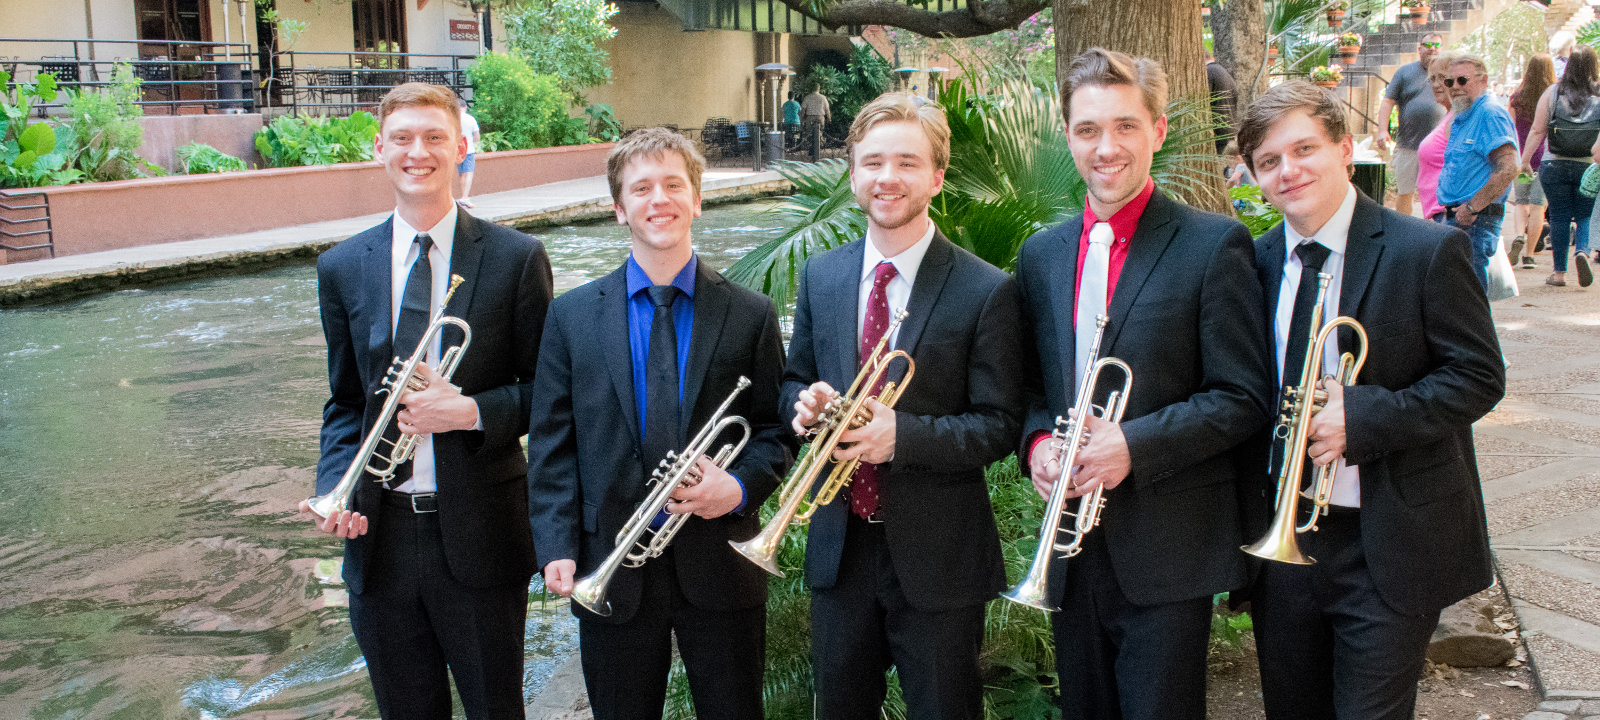 Loyola Students Perform and are Awarded at the International Trumpet Guild Conference